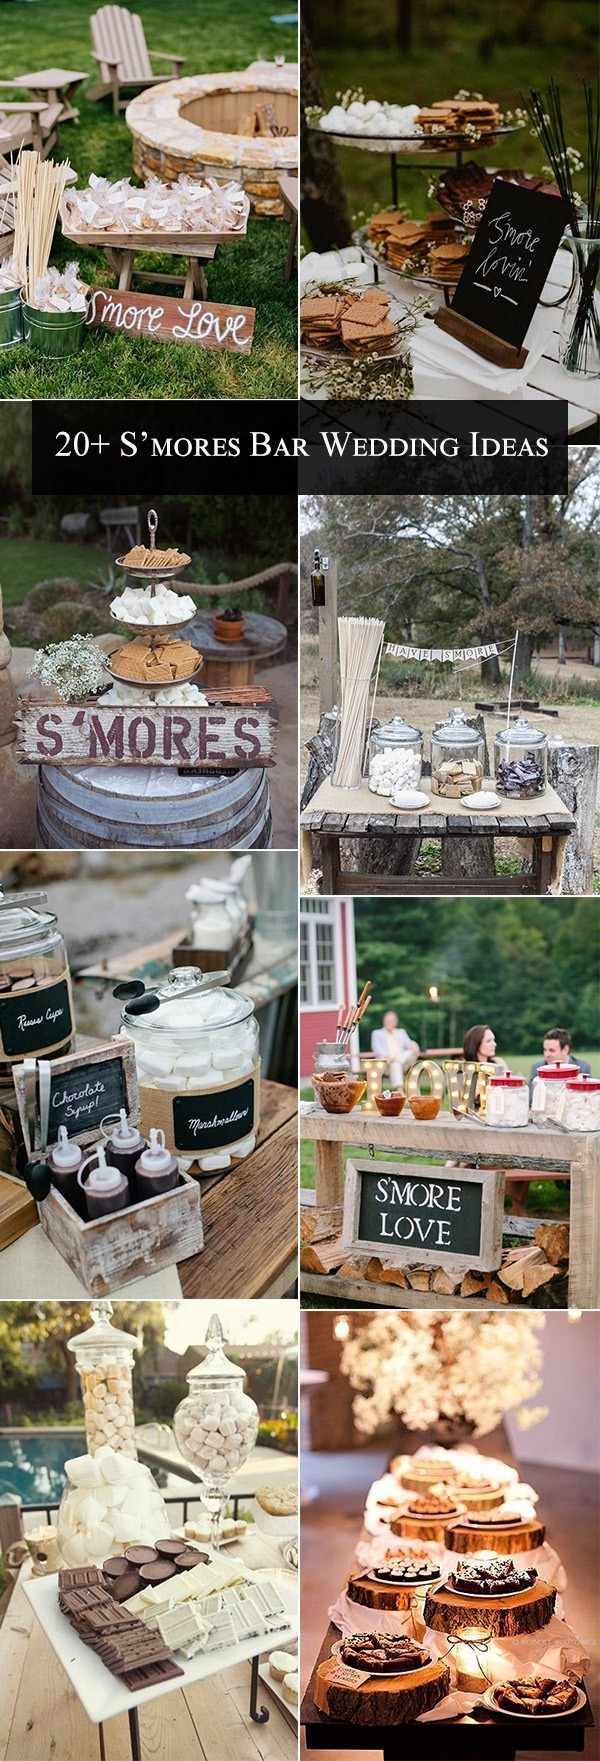 trending S'mores Bar Wedding Ideas for fall and winter weddings